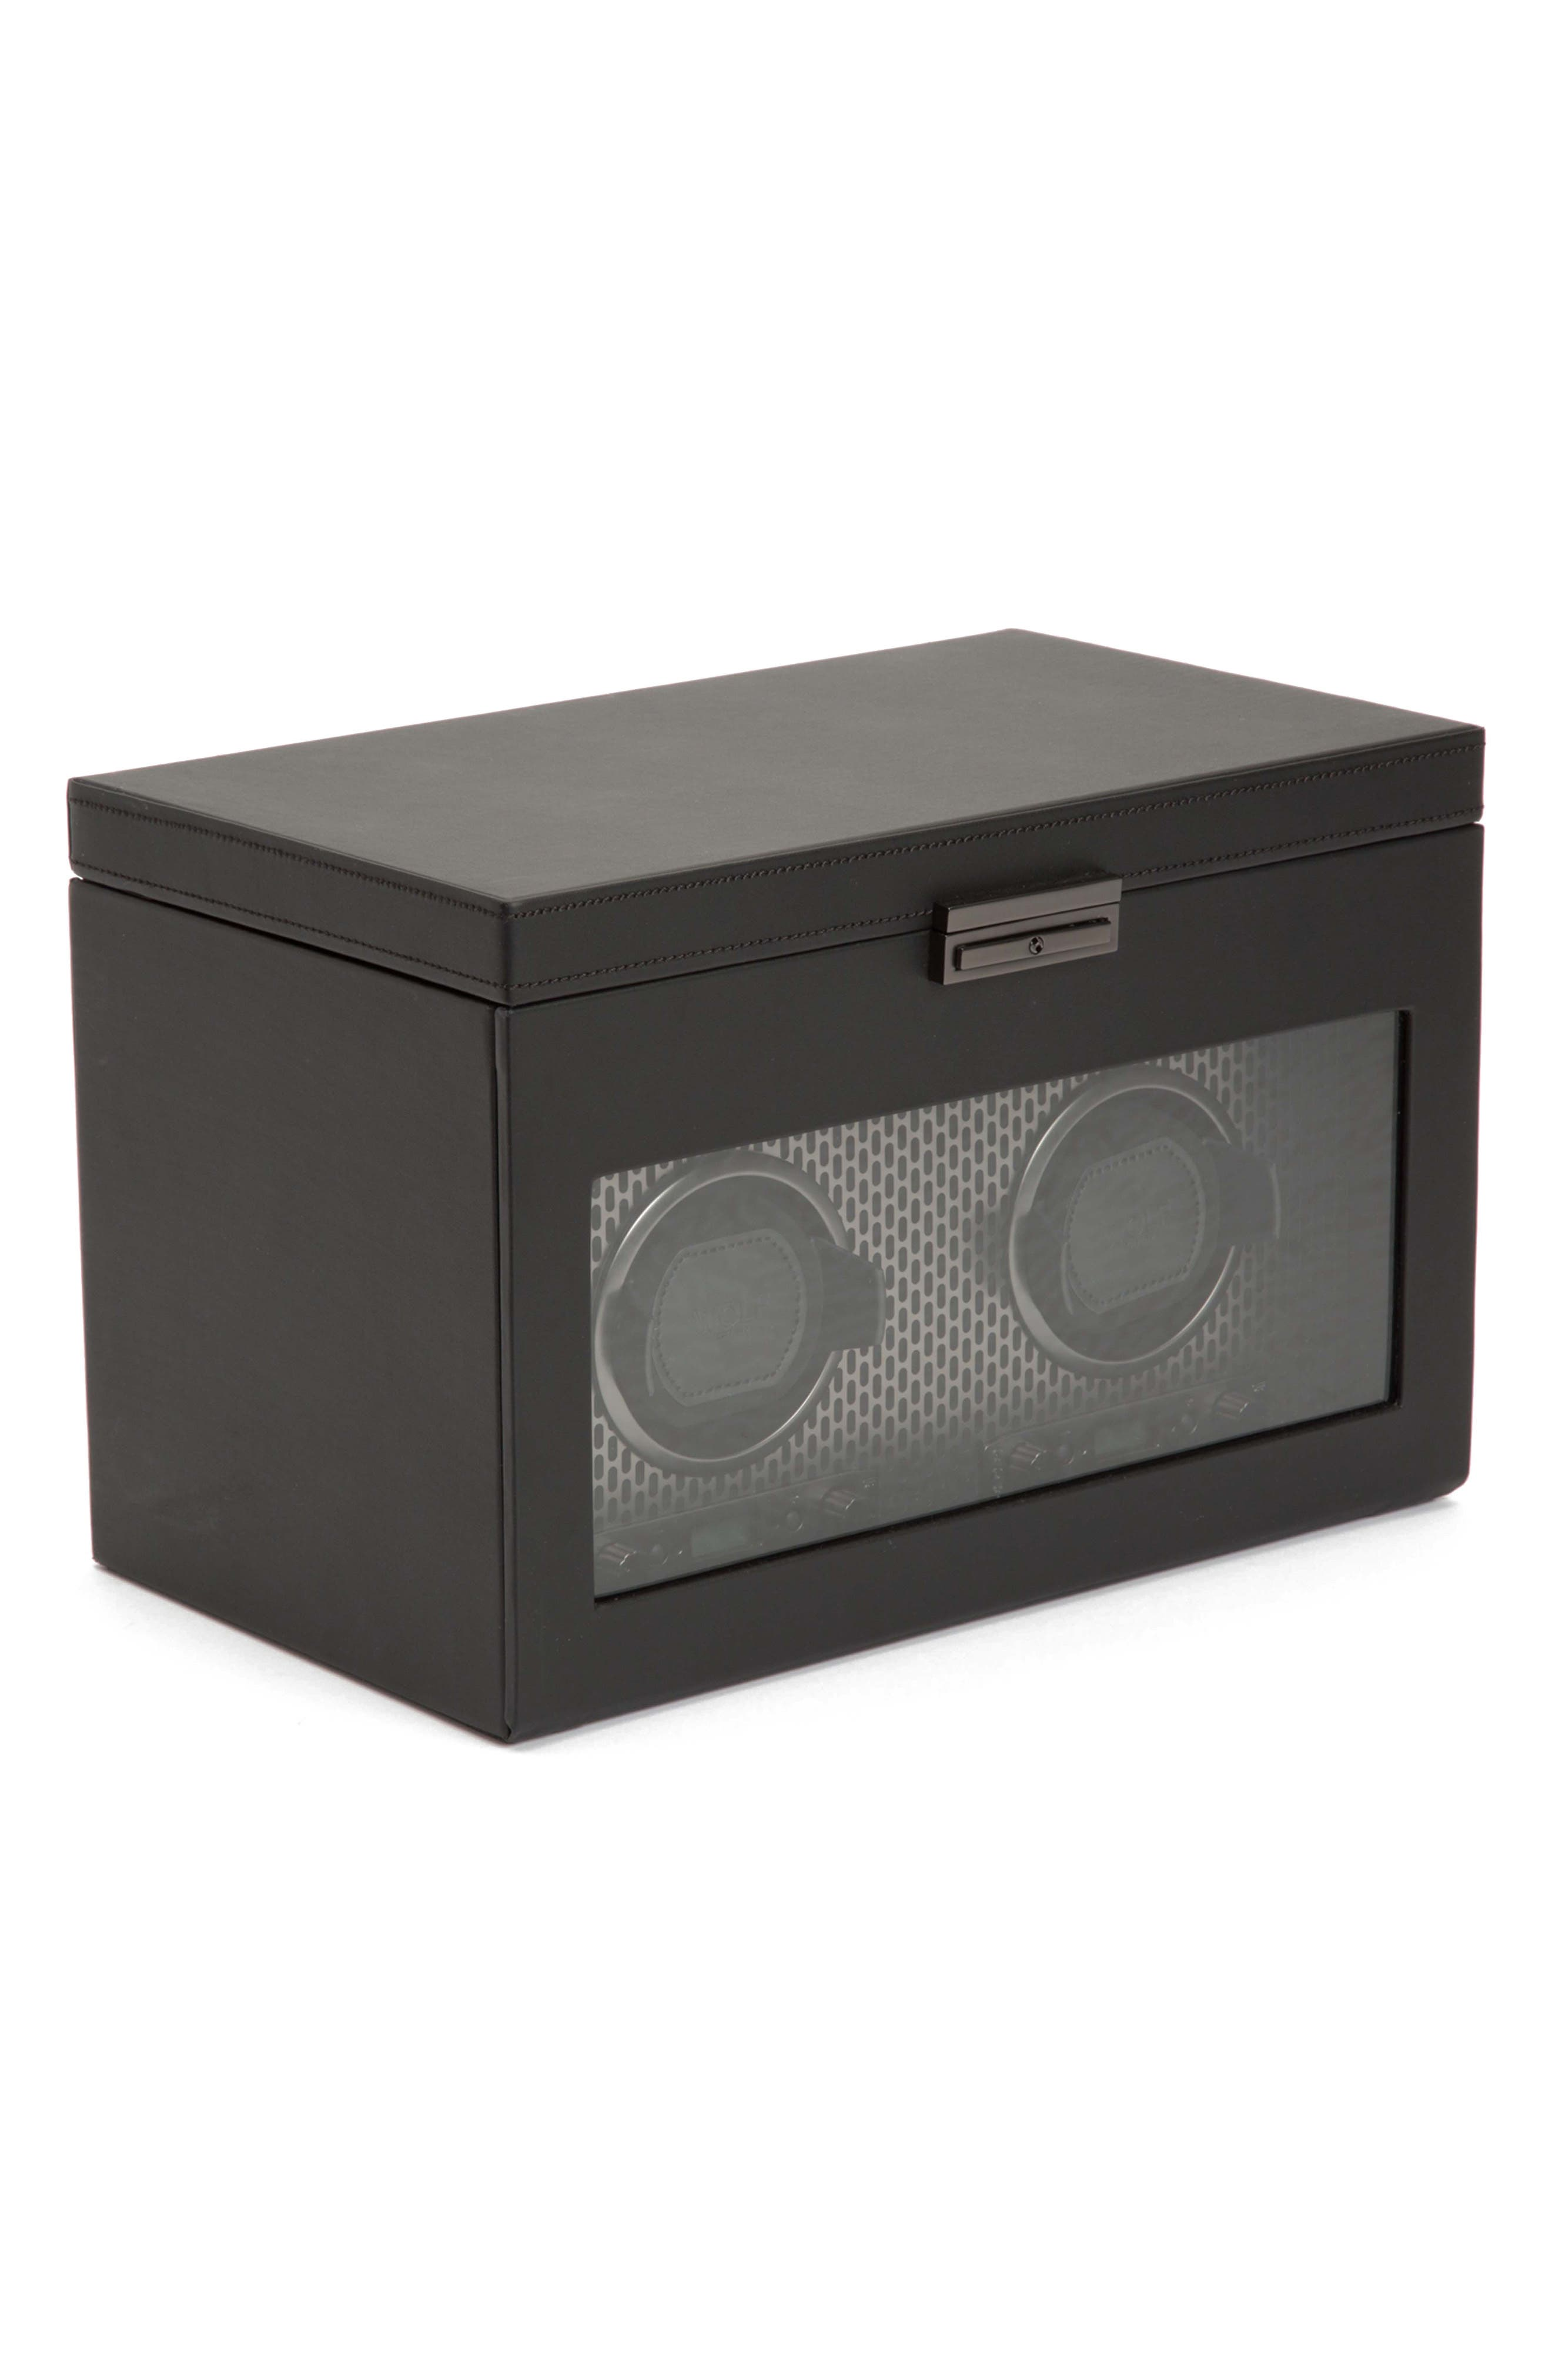 Axis Double Watch Winder & Case,                             Alternate thumbnail 9, color,                             POWDER COAT